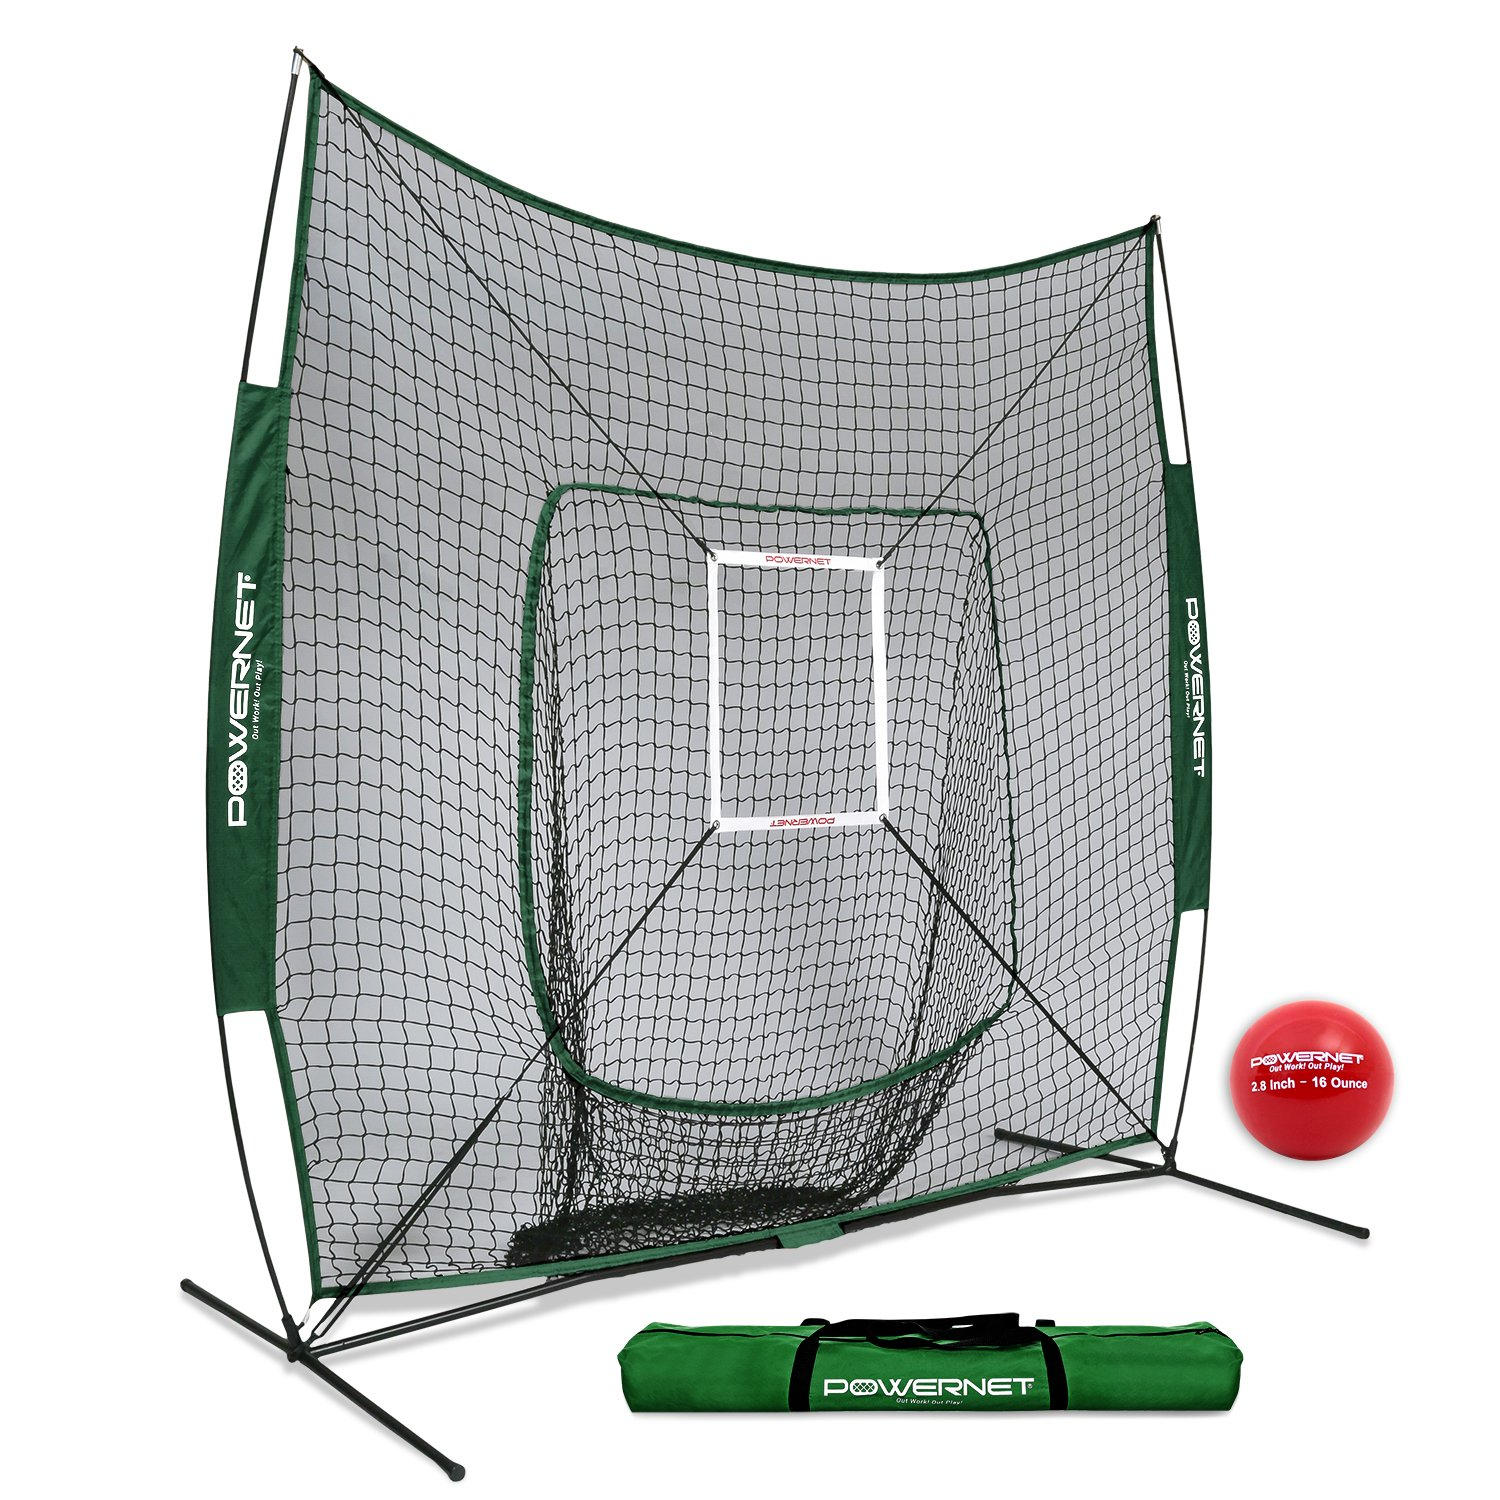 PowerNet DLX 7x7 Baseball Softball Hitting Net + Weighted Heavy Ball + Strike Zone Bundle (Green) | Training Set | Practice Equipment Batting Soft Toss Pitching | Team Color | Portable Backstop by PowerNet